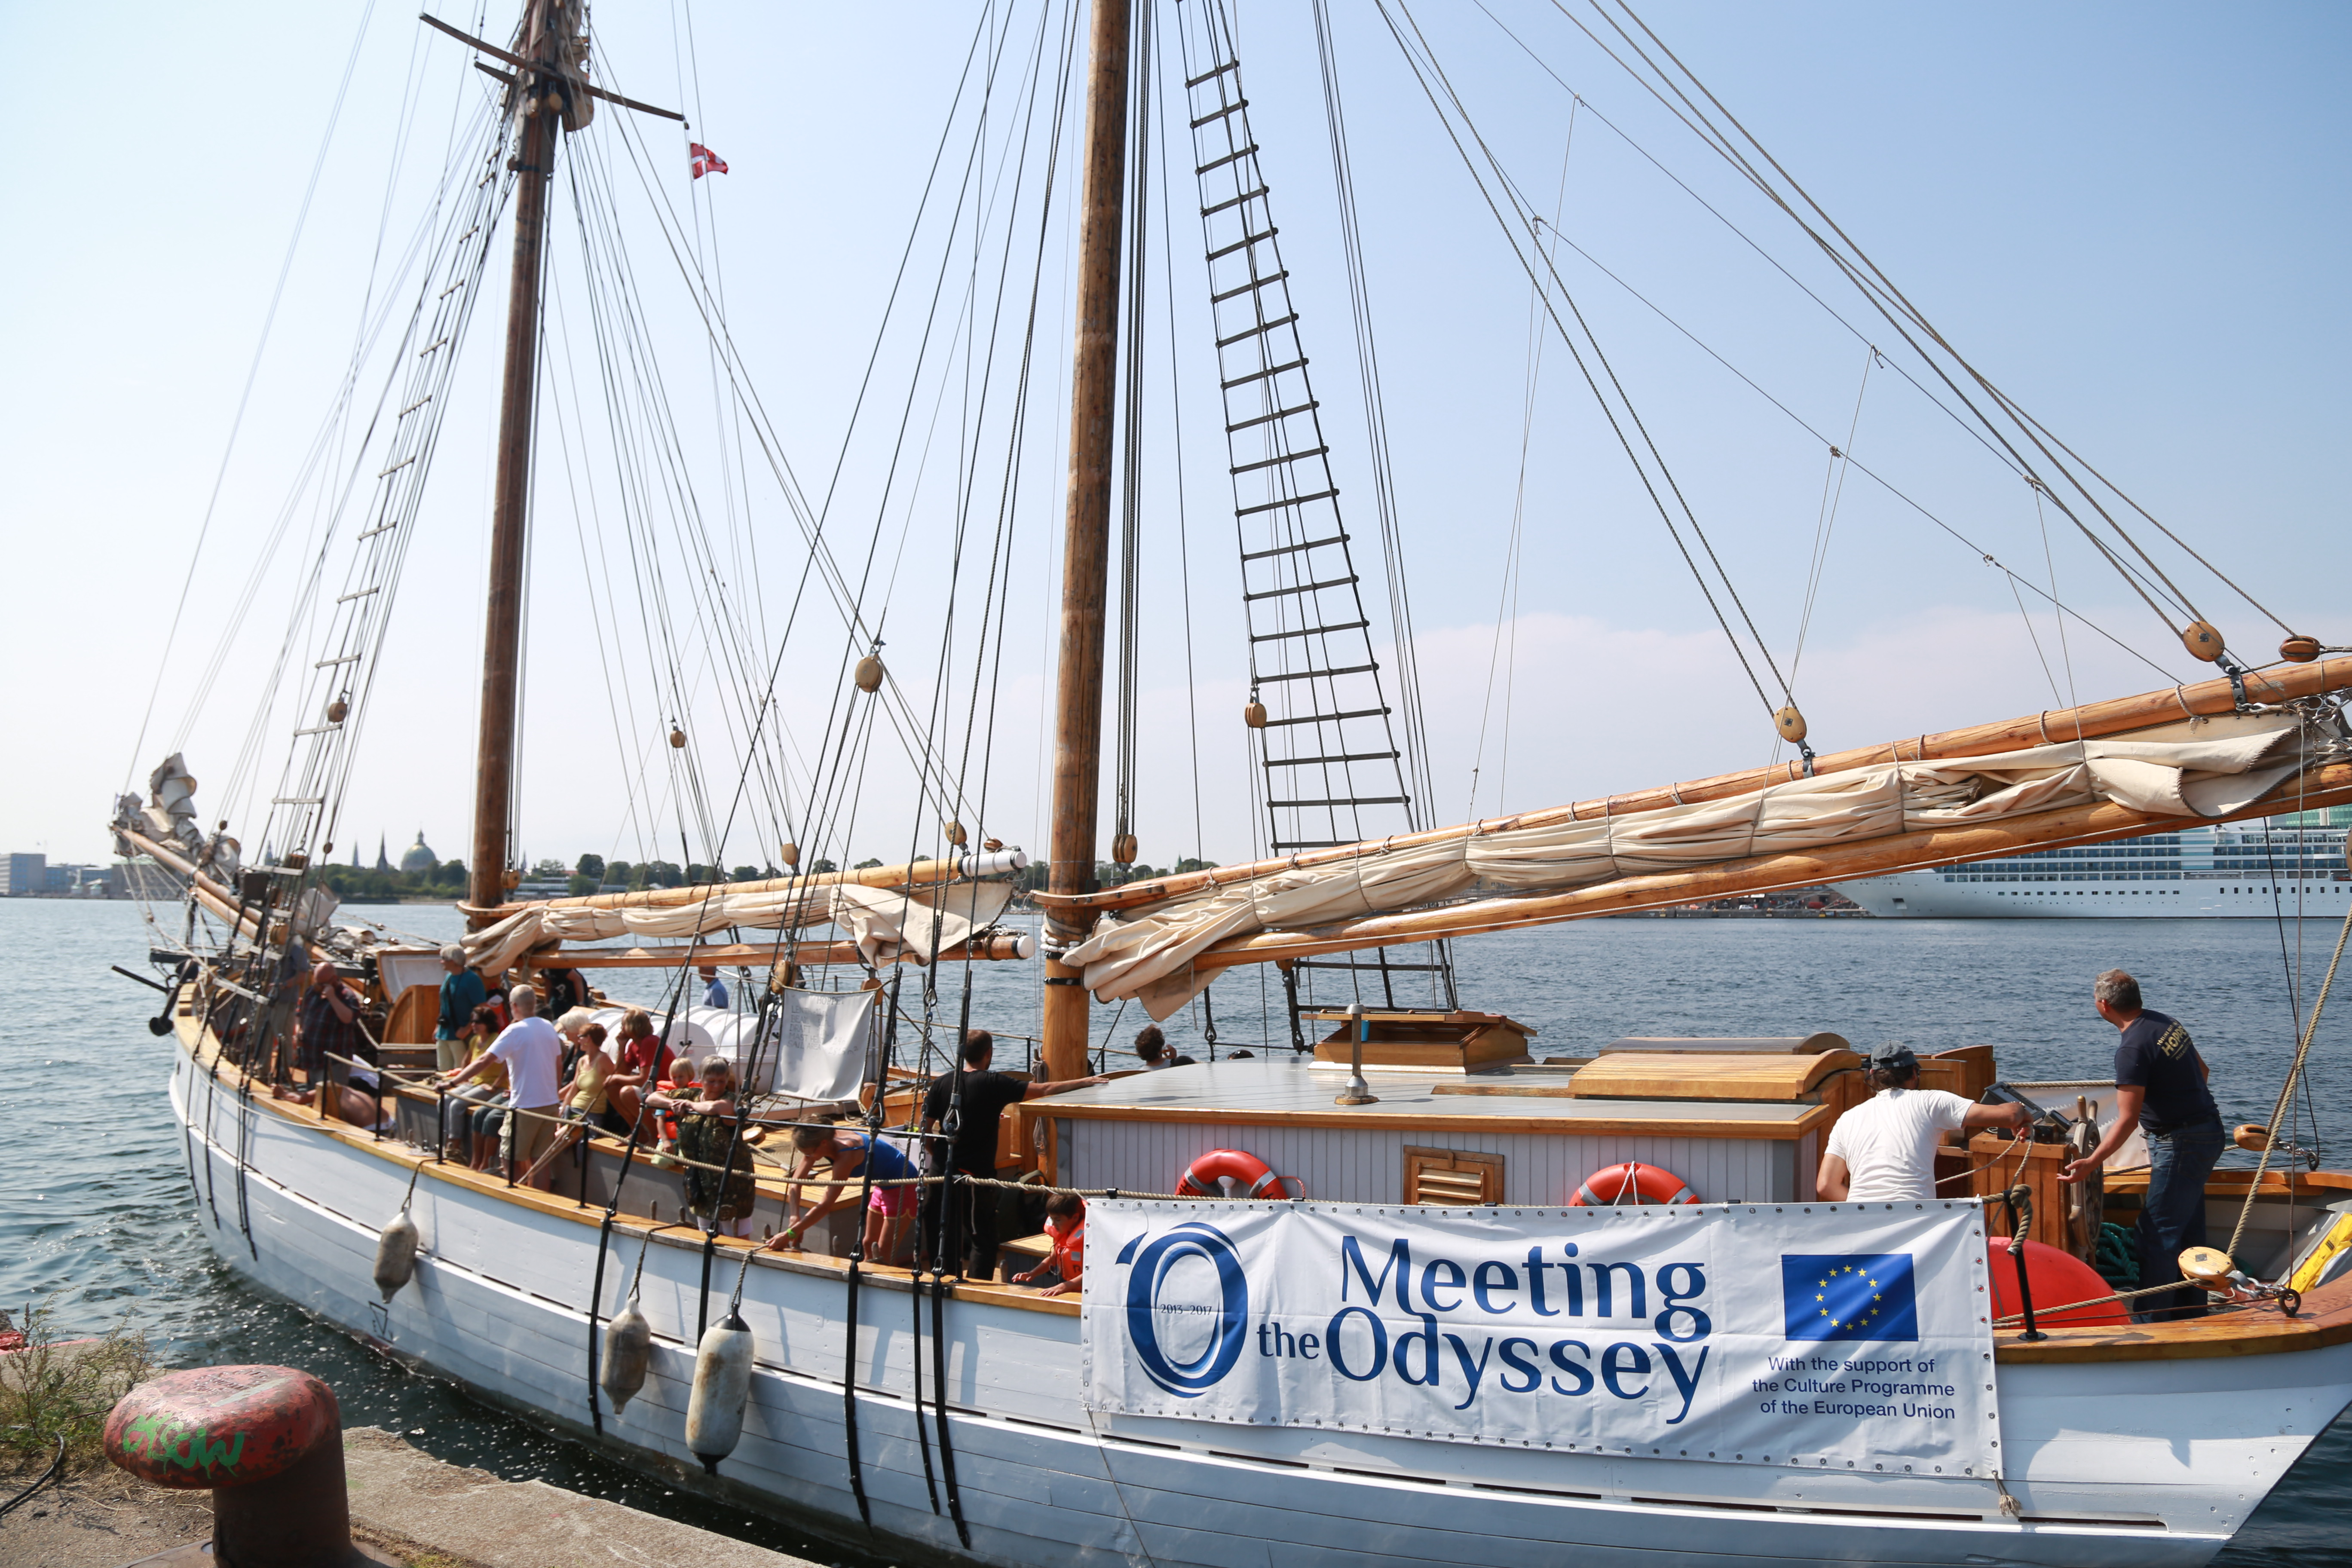 Meeting the Odyssey: All Aboard the Culture Ship